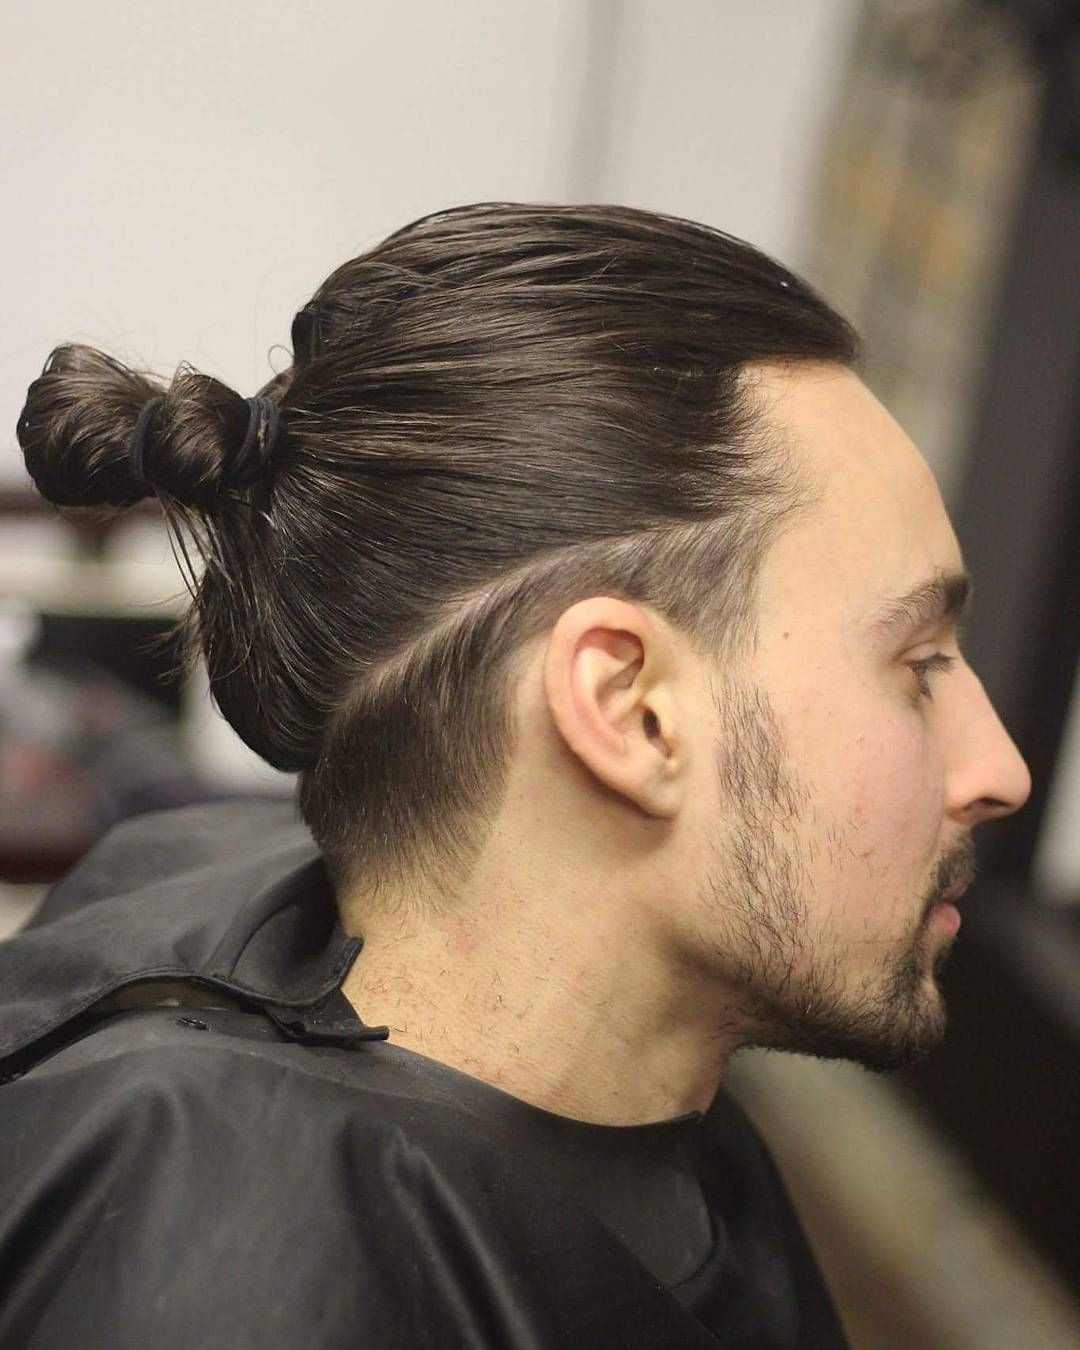 22 Long Hair Ideas For Men Cool Long Haircuts Hairstyles For 2020 Undercut Long Hair Guy Haircuts Long Mens Hairstyles Undercut